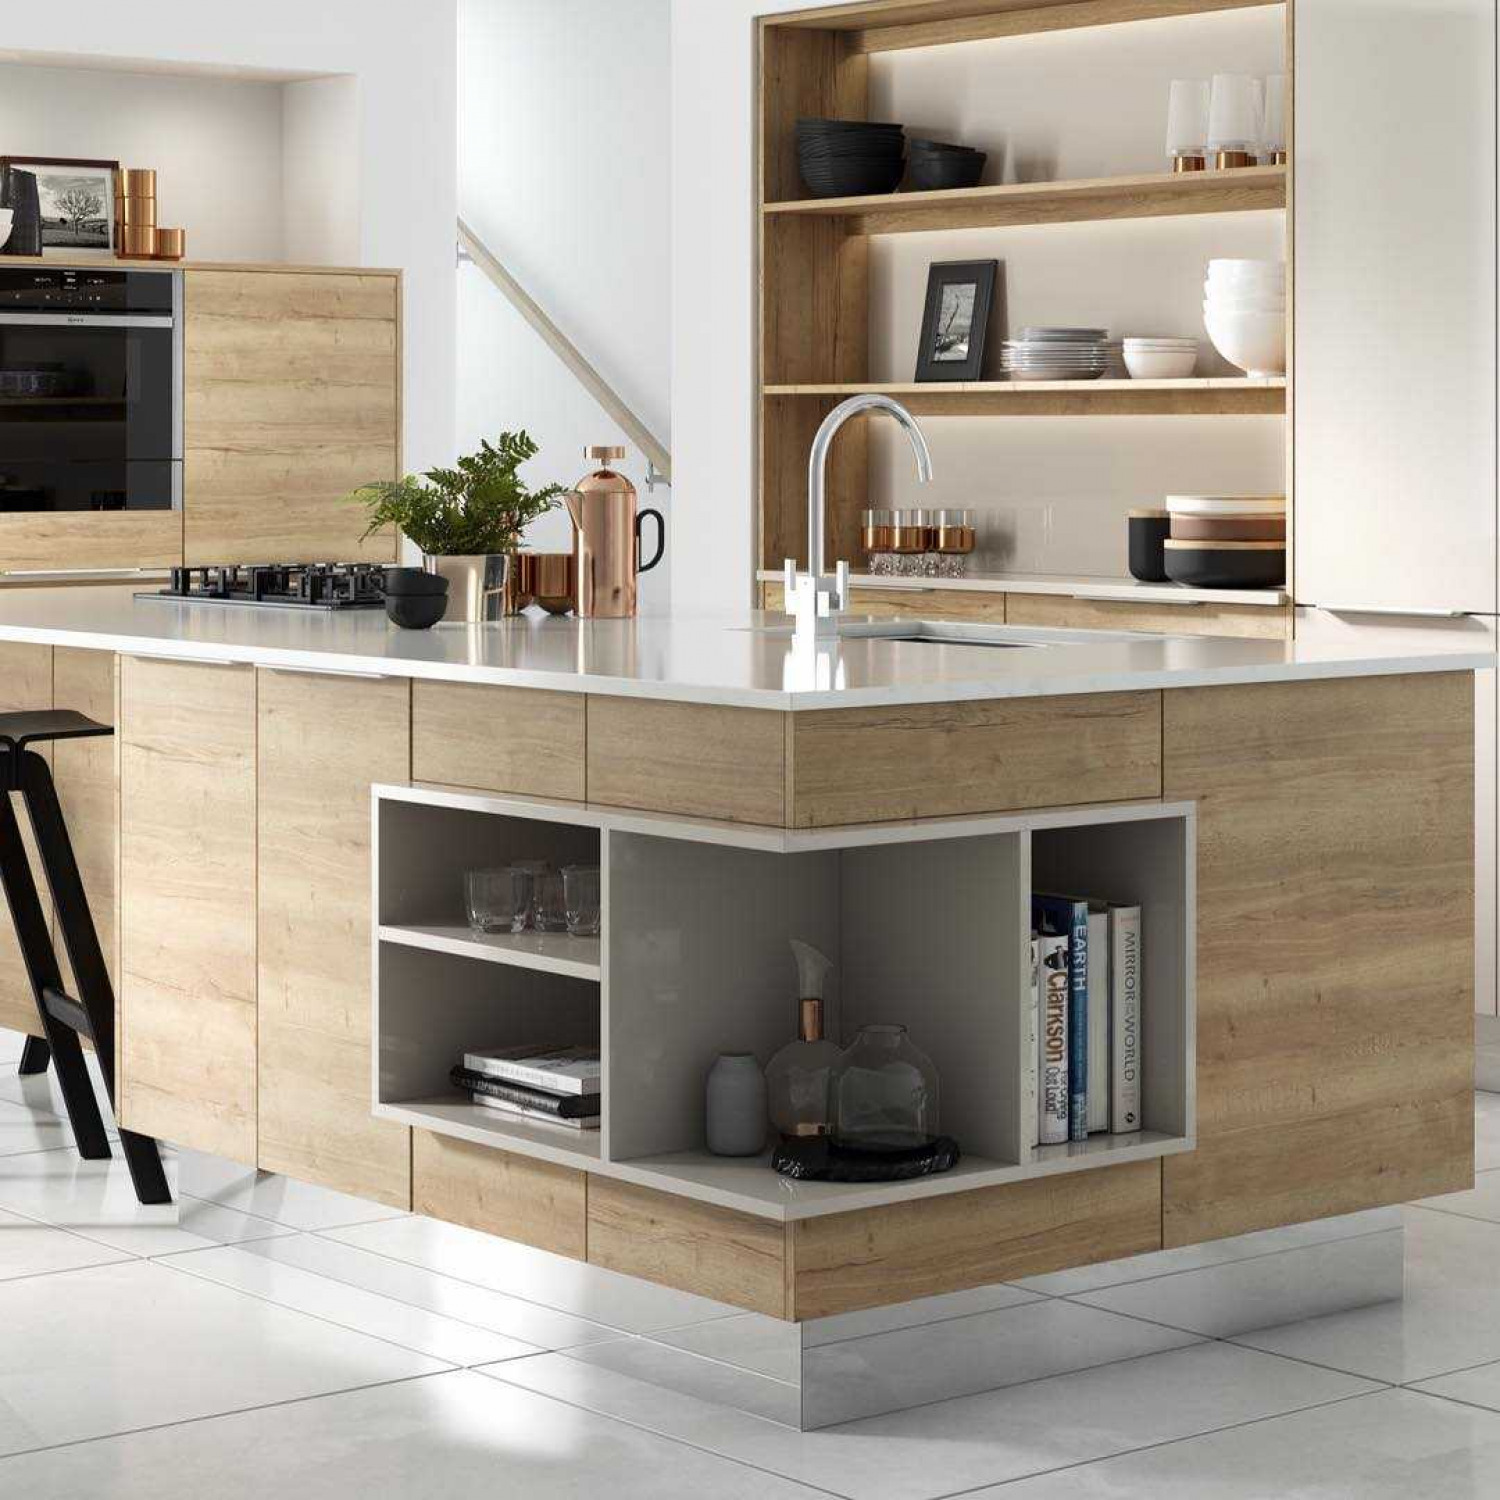 Open Kitchen Shelves Instead Of Cabinets: Kitchen Shelving: Discover Storage Ideas For Your Home